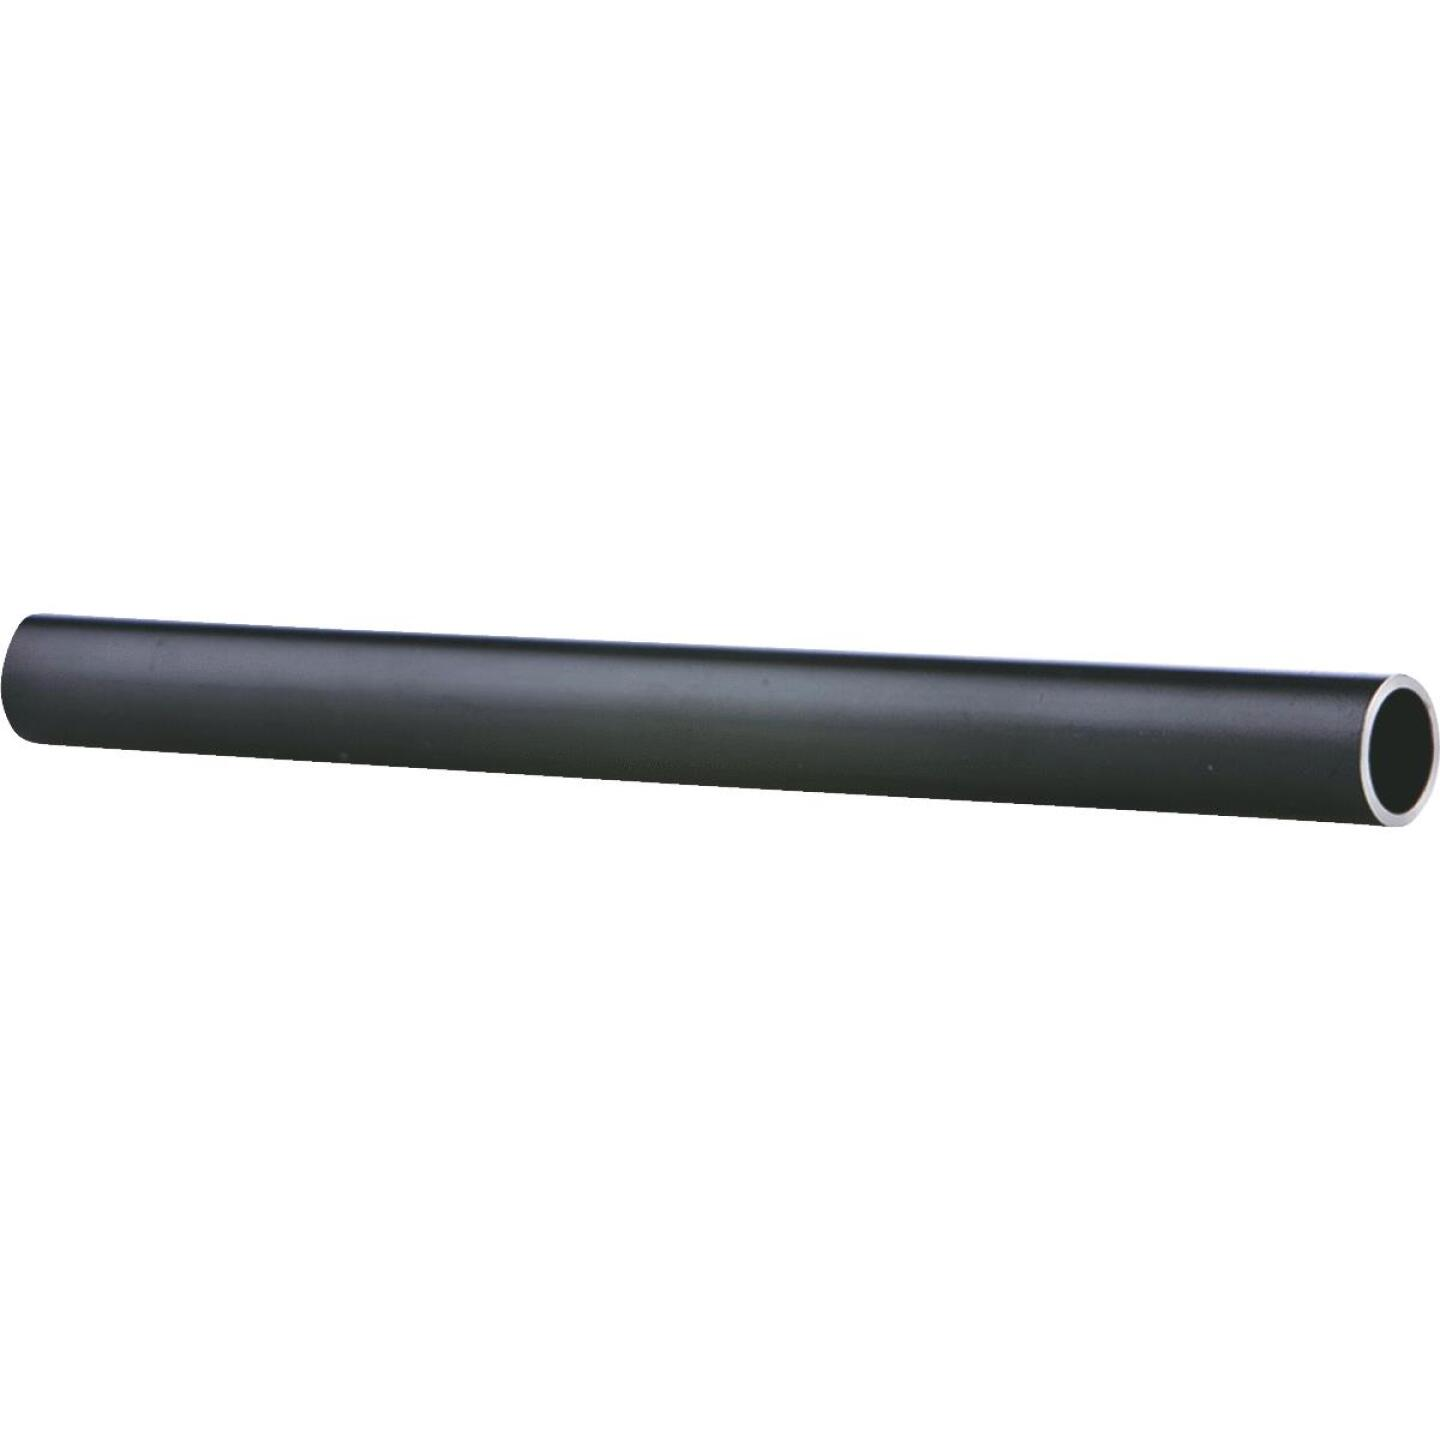 Southland 1-1/4 In. x 21 Ft. Carbon Steel Threaded and Coupled Black Pipe Image 1